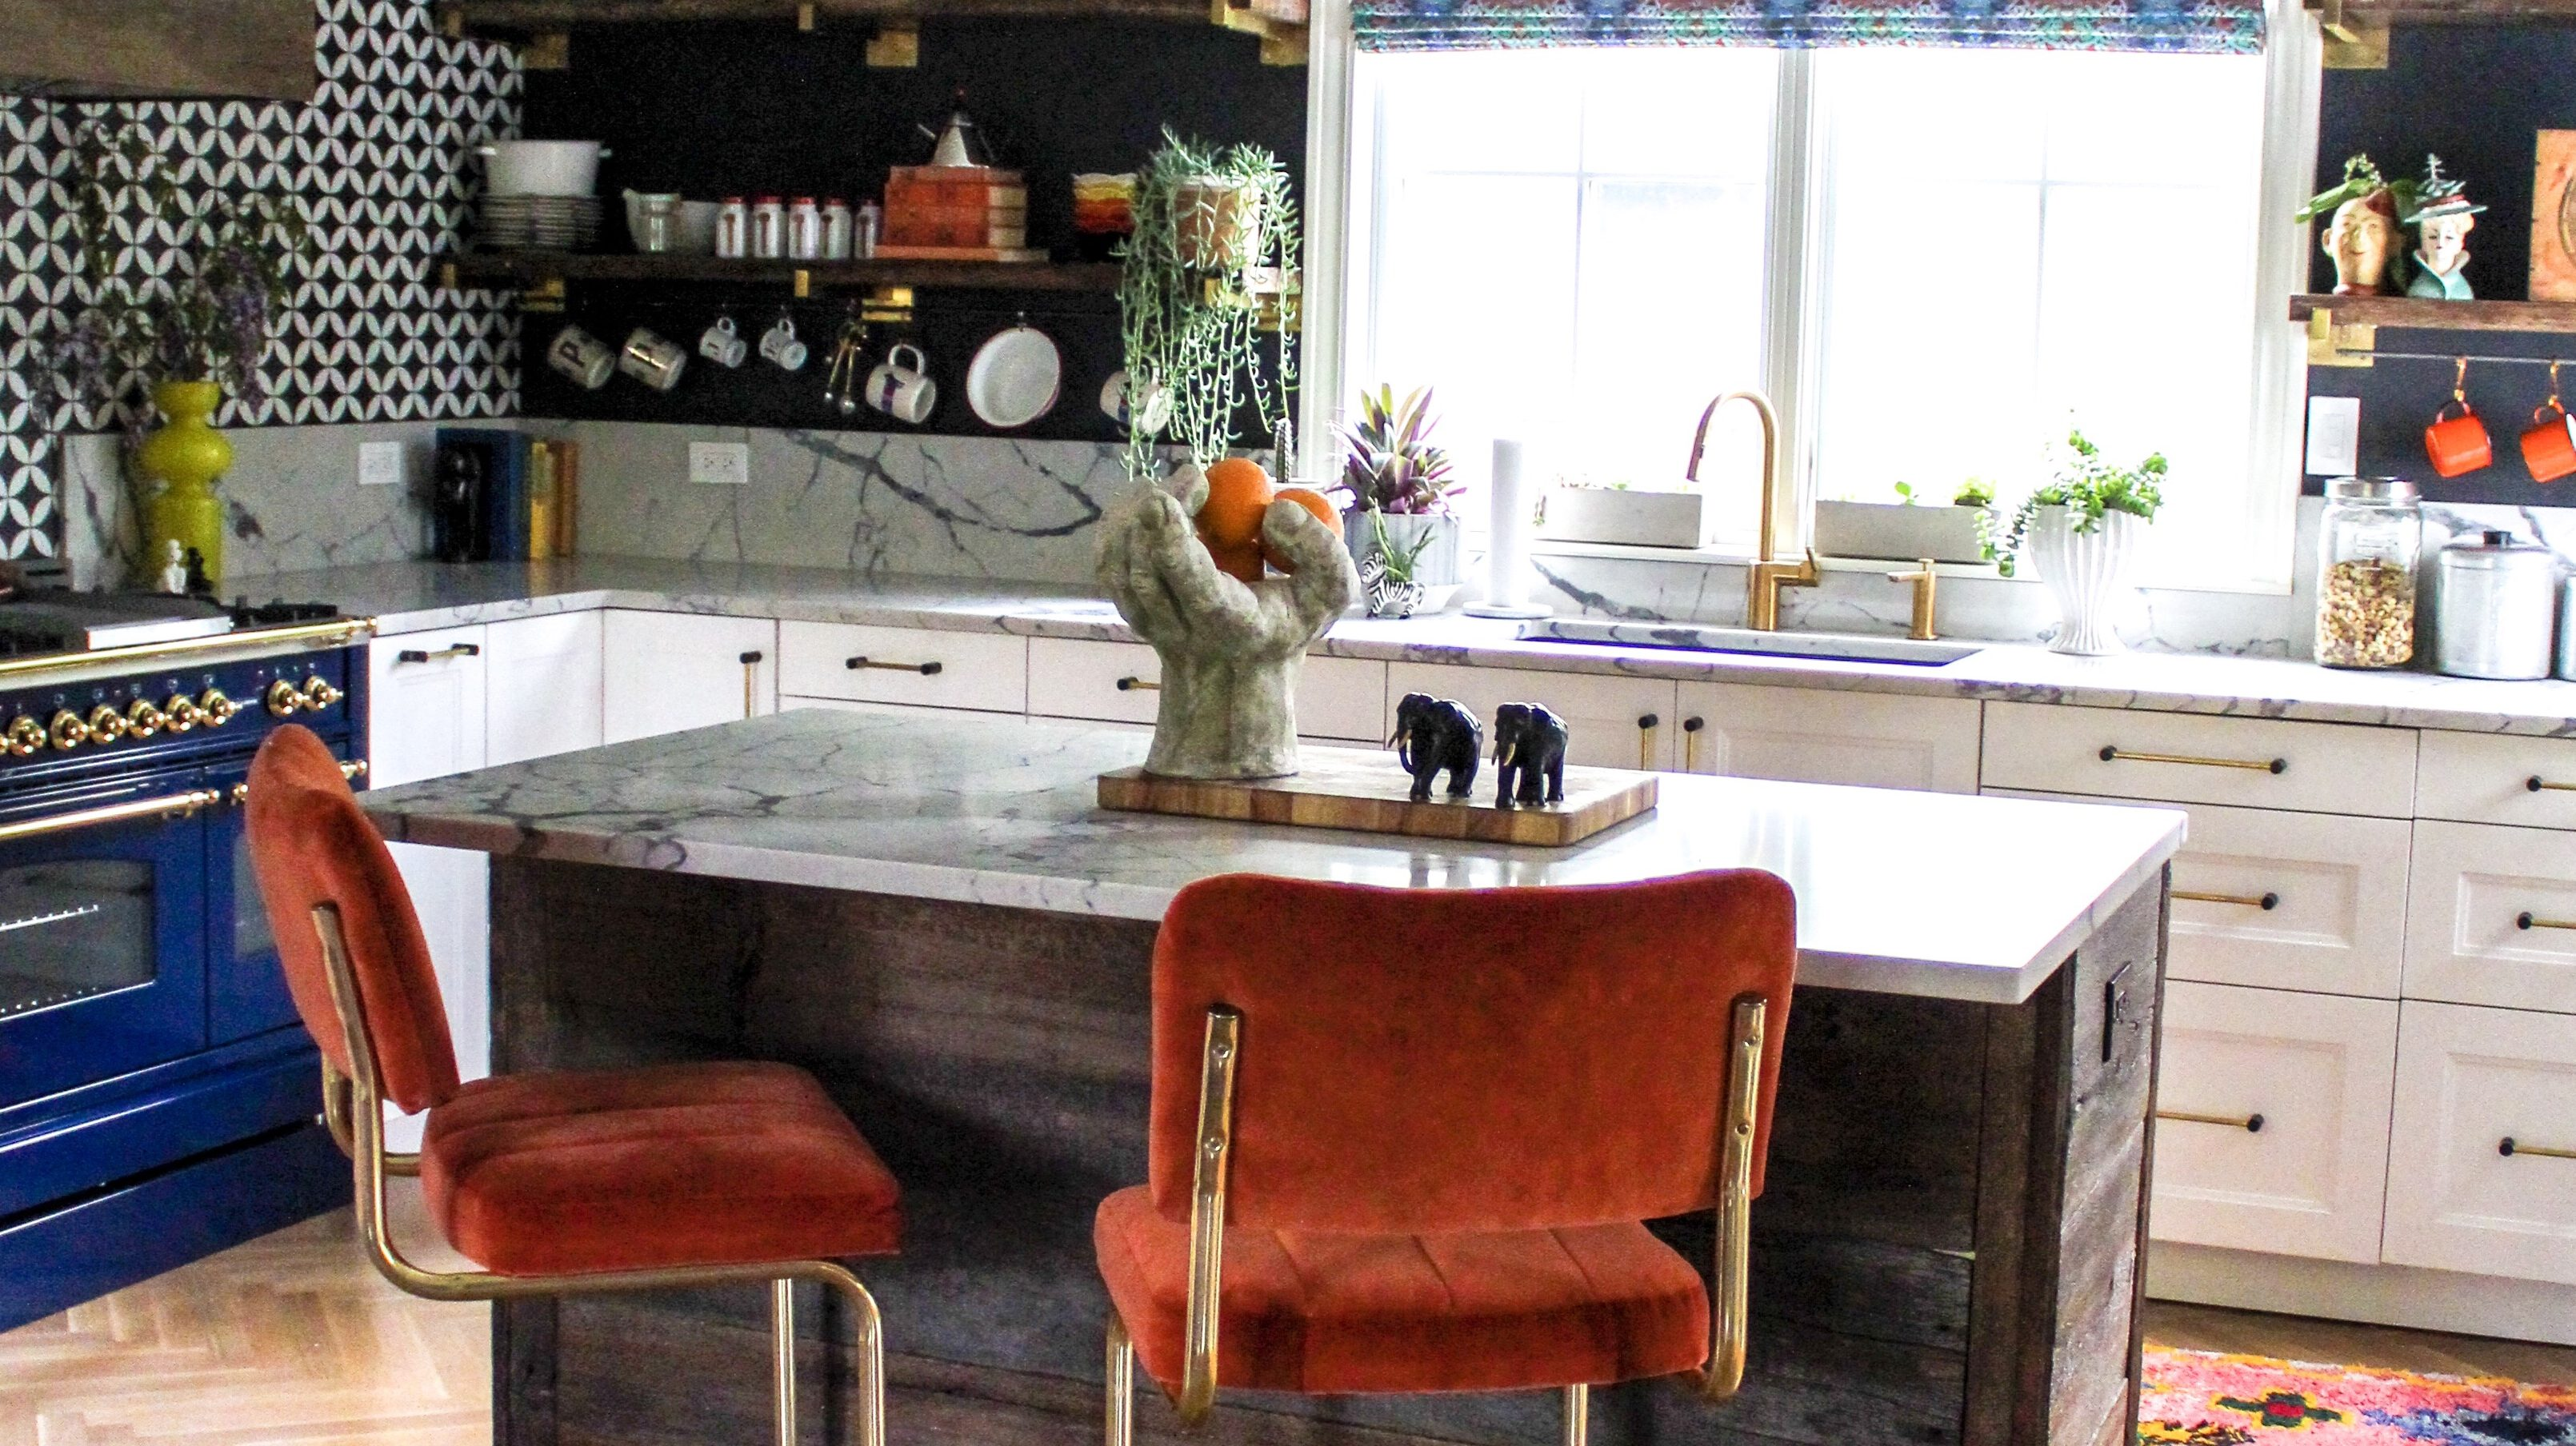 One Room Challenge | Our Bold Eclectic Kitchen REVEAL